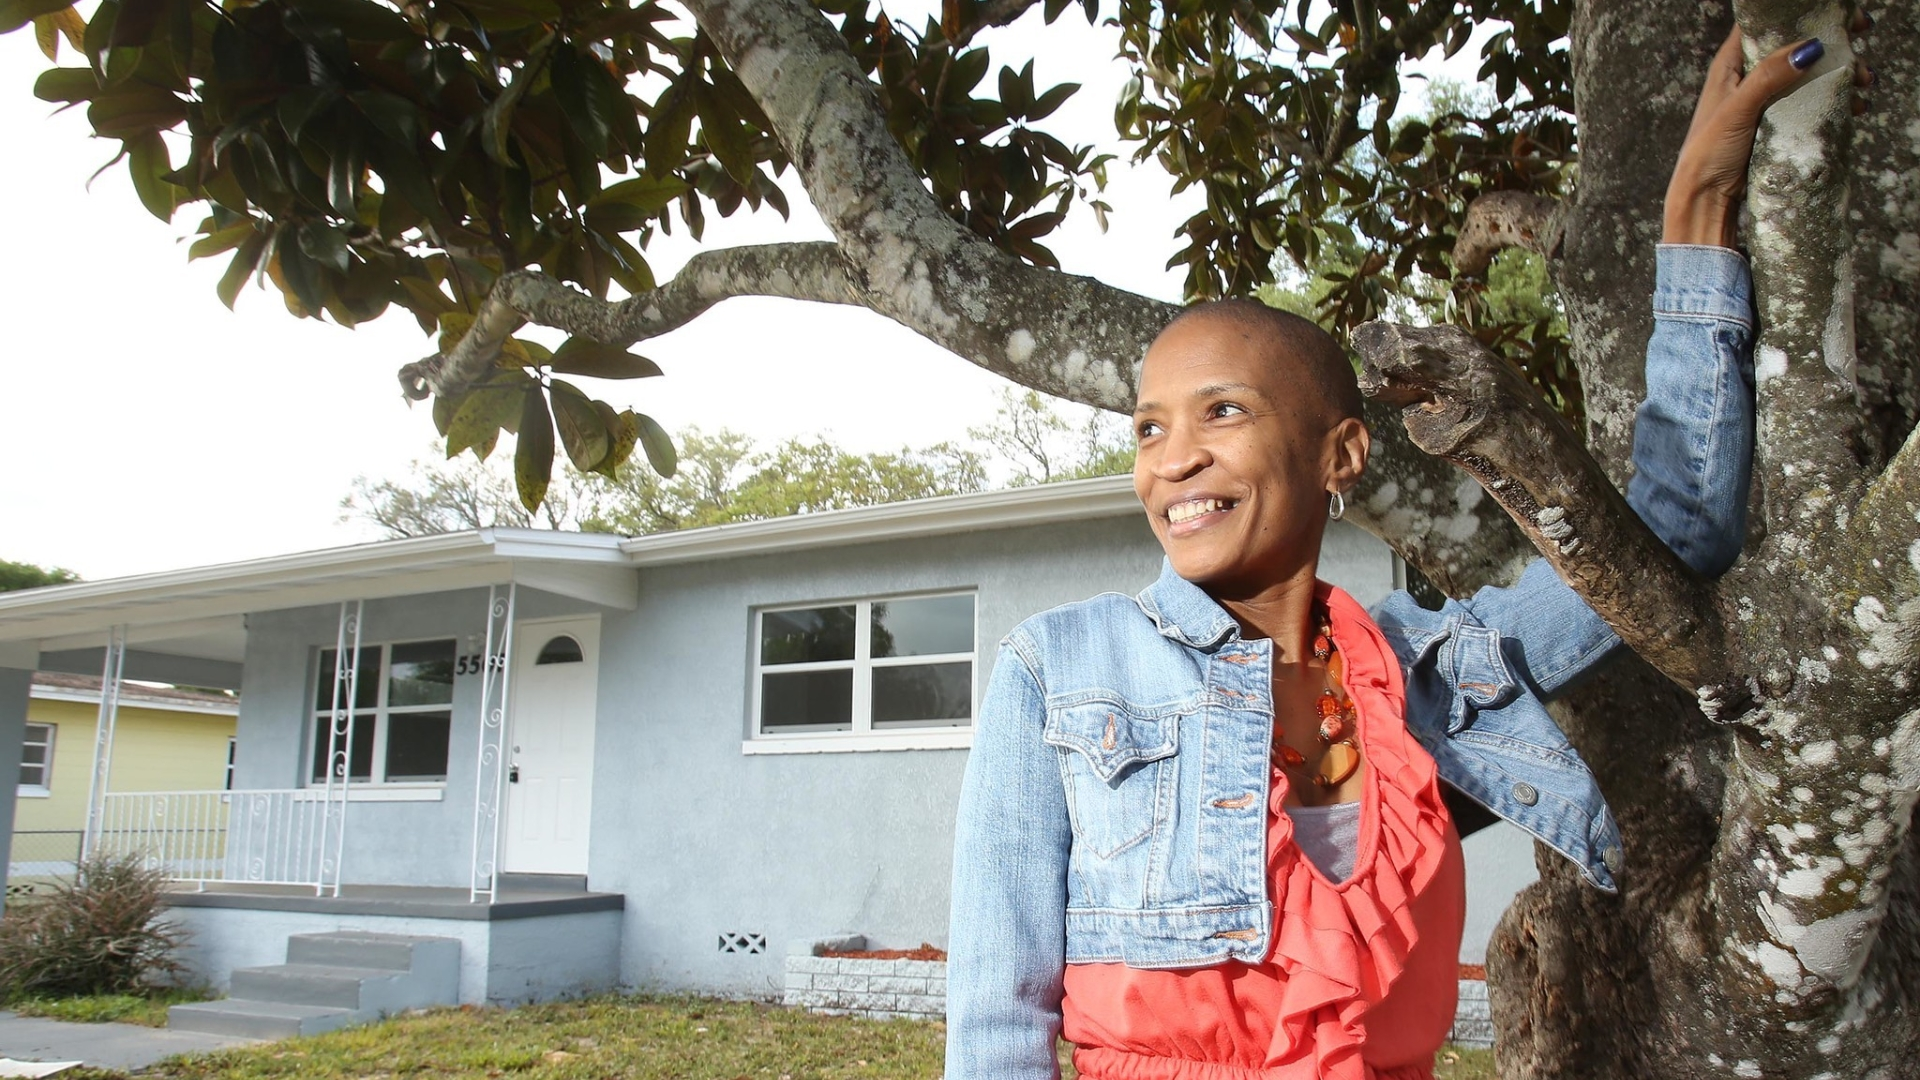 Orlando home prices soaring in unexpected neighborhoods